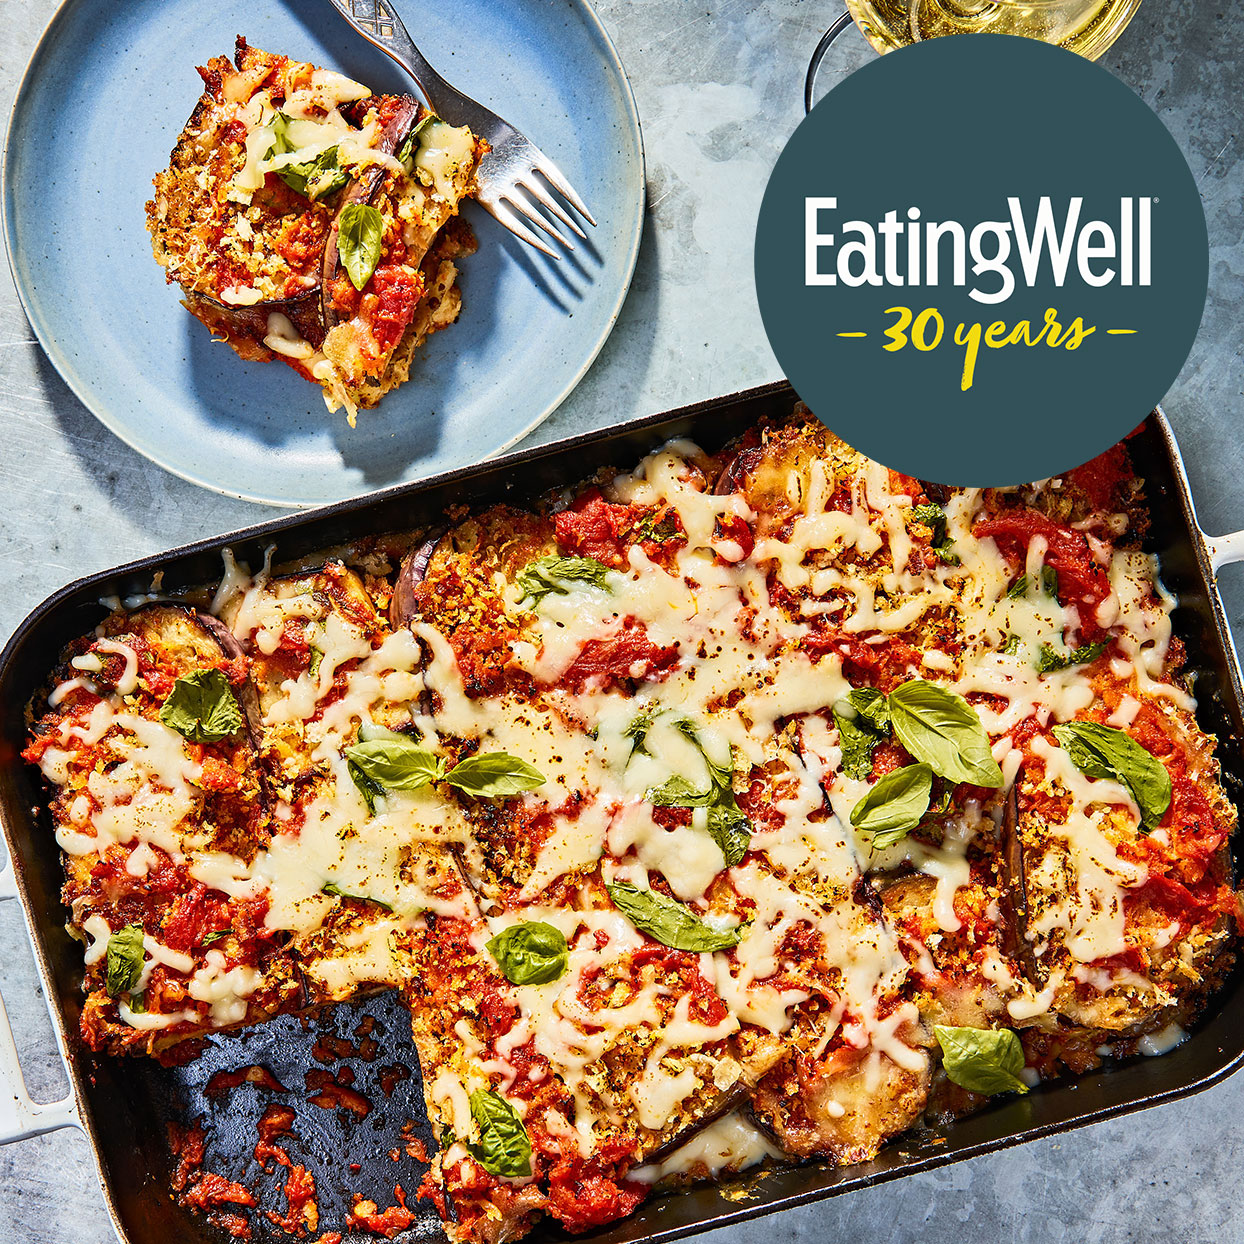 https://www.eatingwell.com/gallery/7836594/our-best-healthy-recipe-makeovers/egpplant-parmesan/